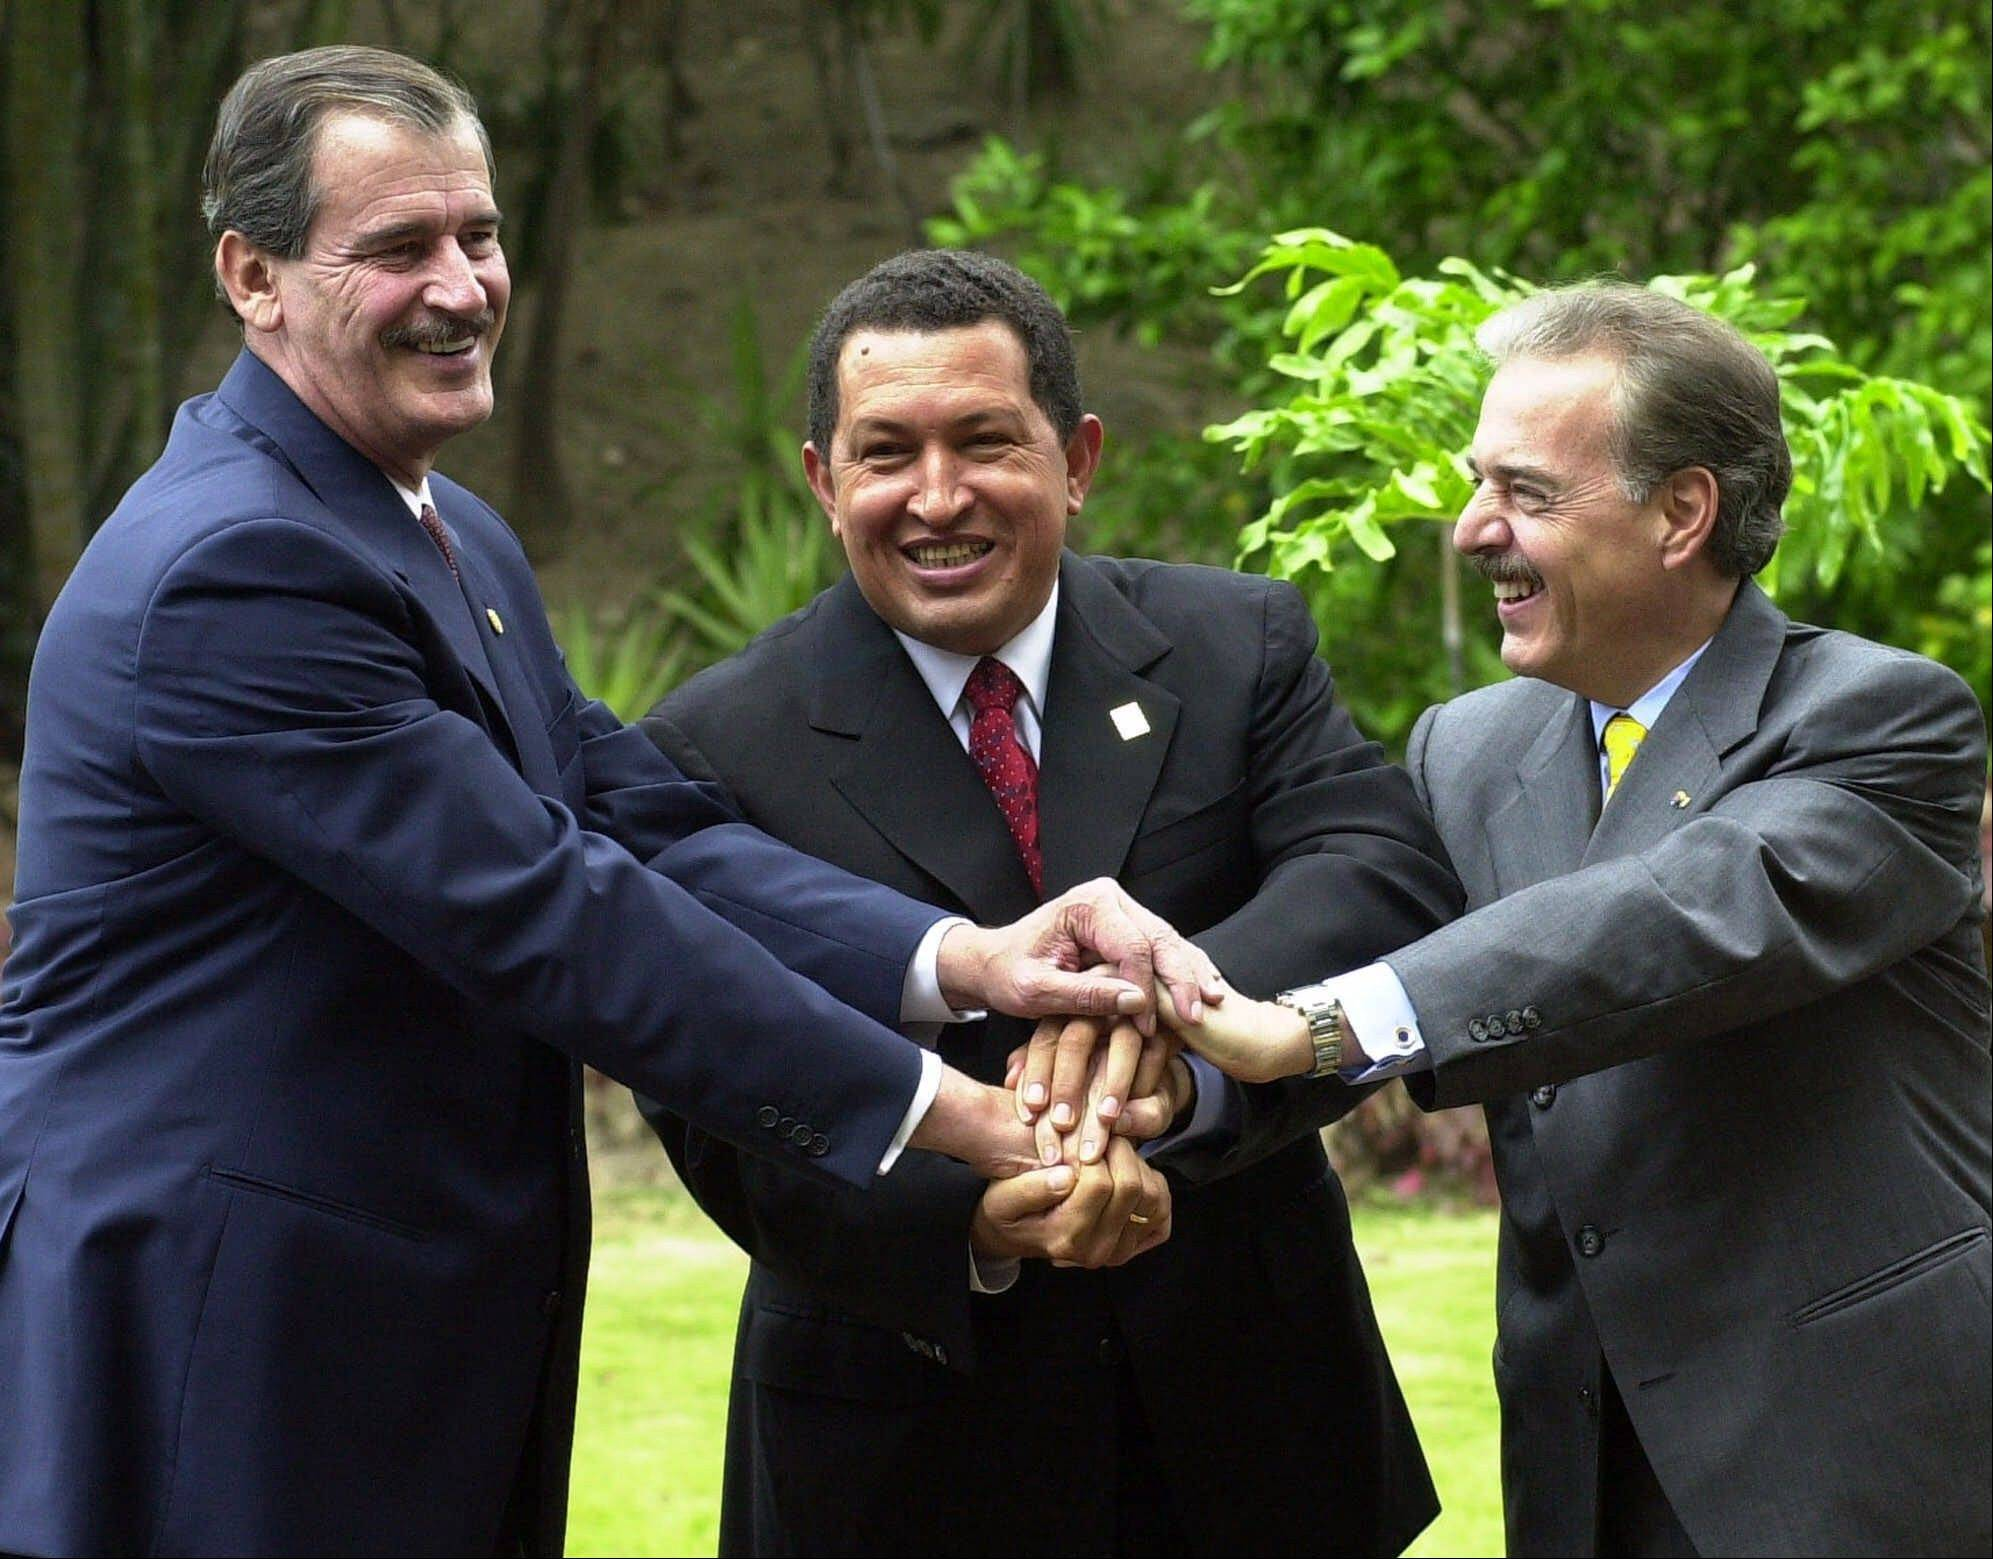 In this April 8, 2001 file photo, Mexico's President Vicente Fox, left, Venezuela's President Hugo Chavez, center, and Colombia's President Andres Pastrana shake hands as they pose for a photo in Caracas, Venezuela.